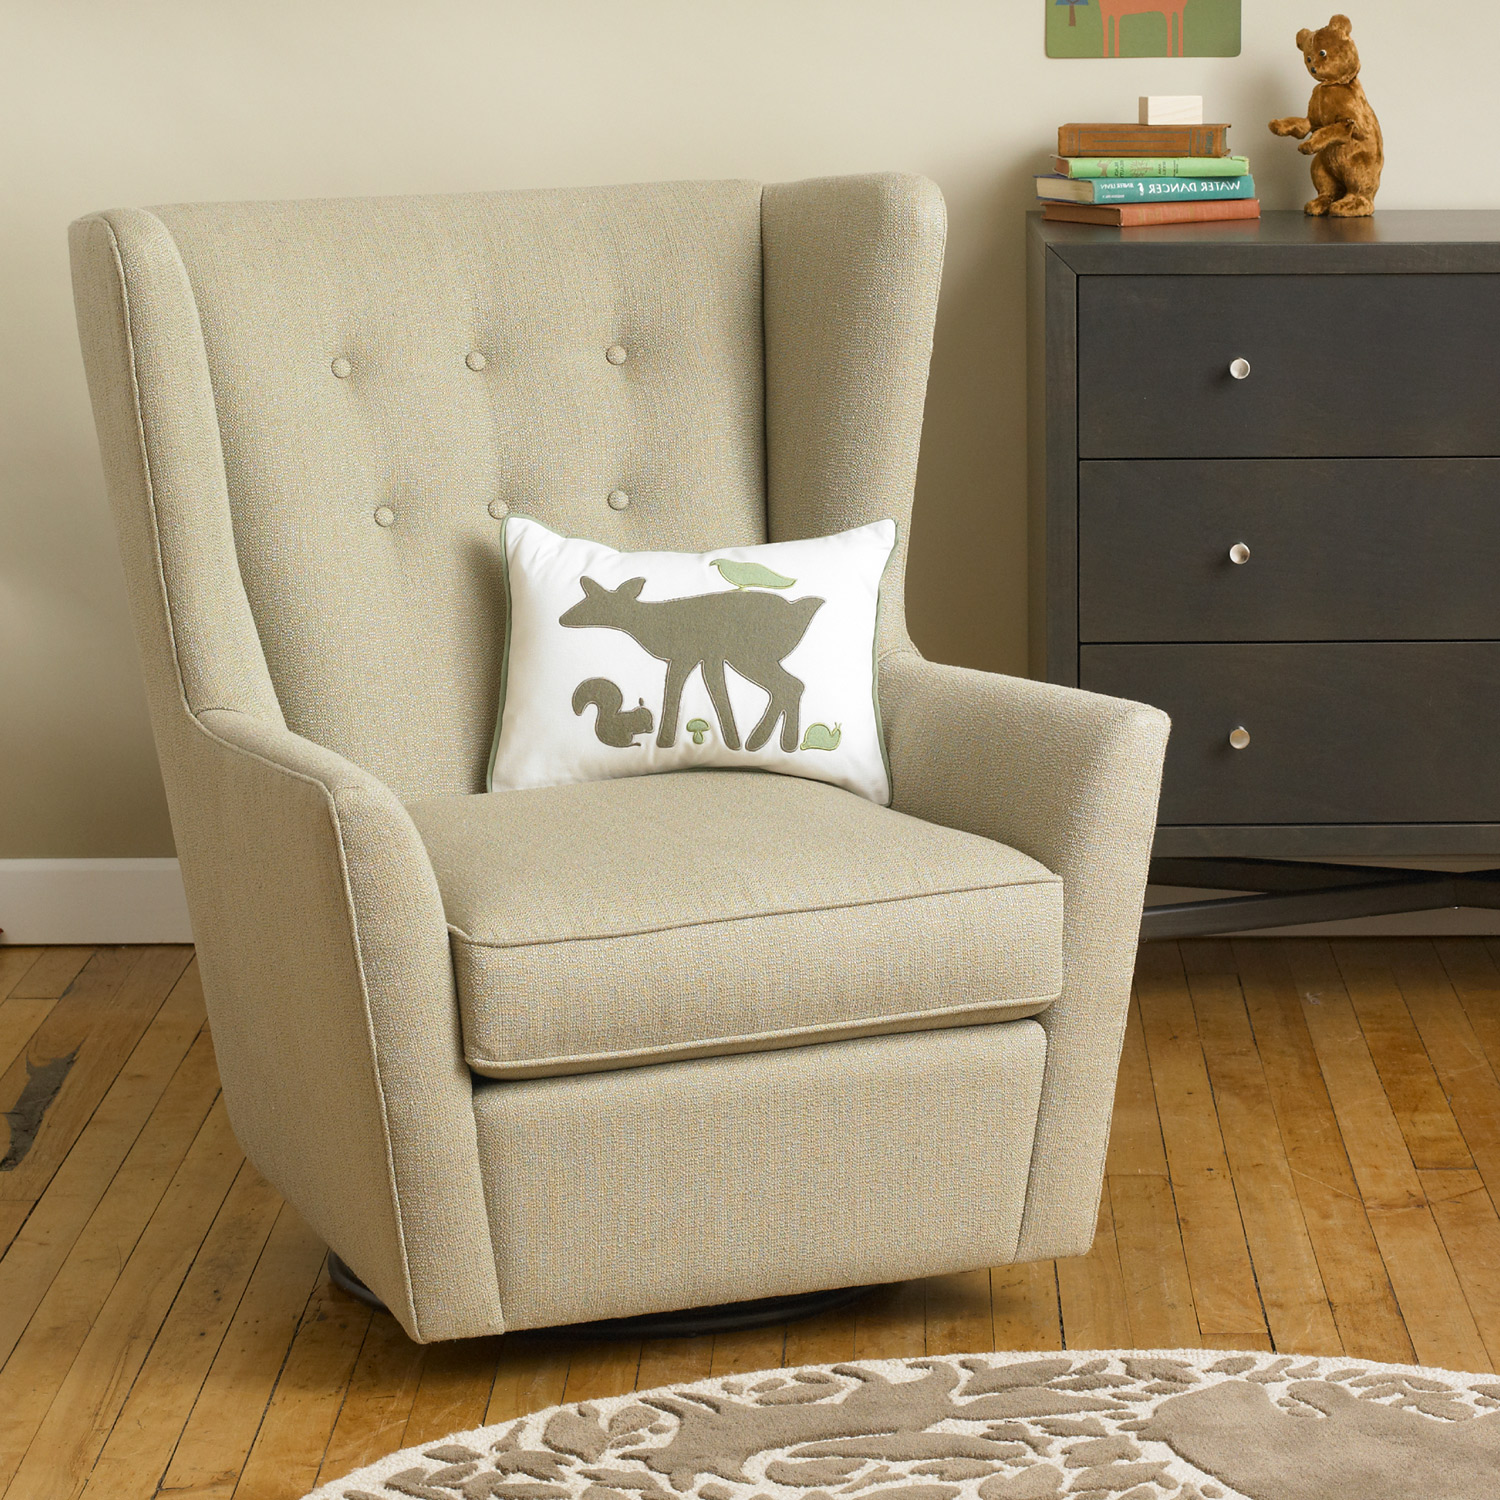 Image of: perfect nursery glider chair